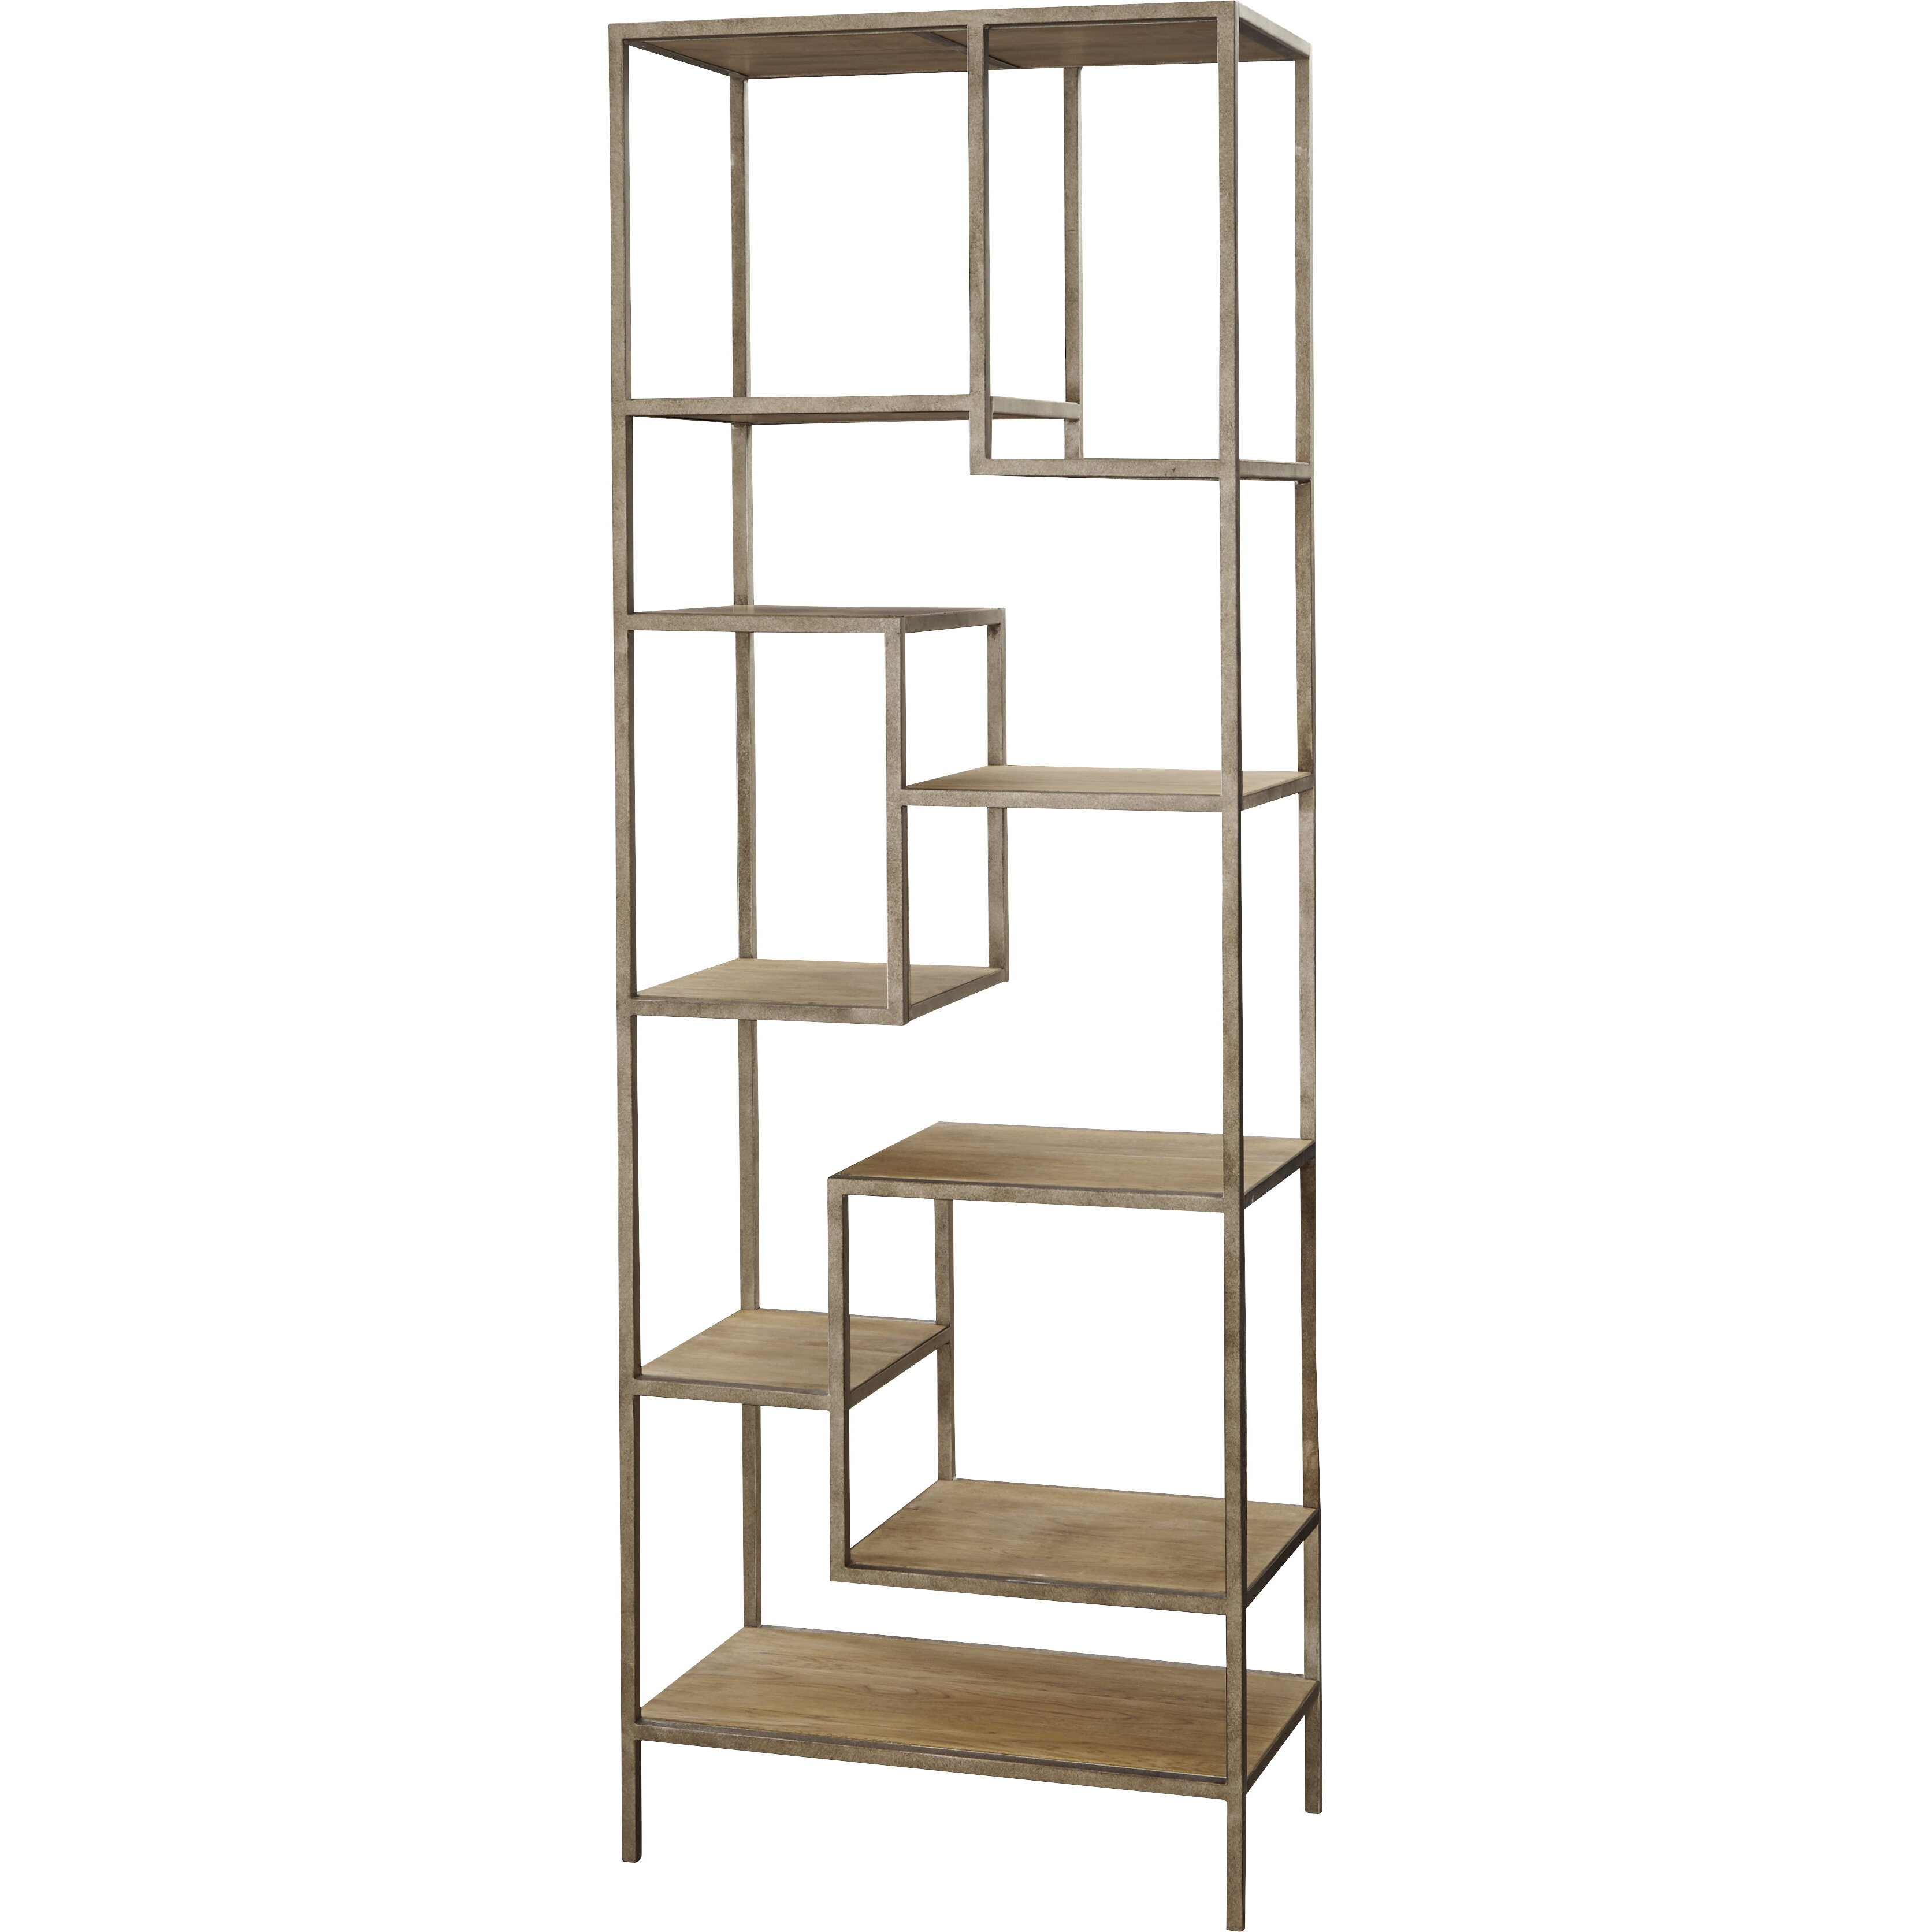 universal furniture moderne muse 86 etagere bookcase reviews wayfair. Black Bedroom Furniture Sets. Home Design Ideas